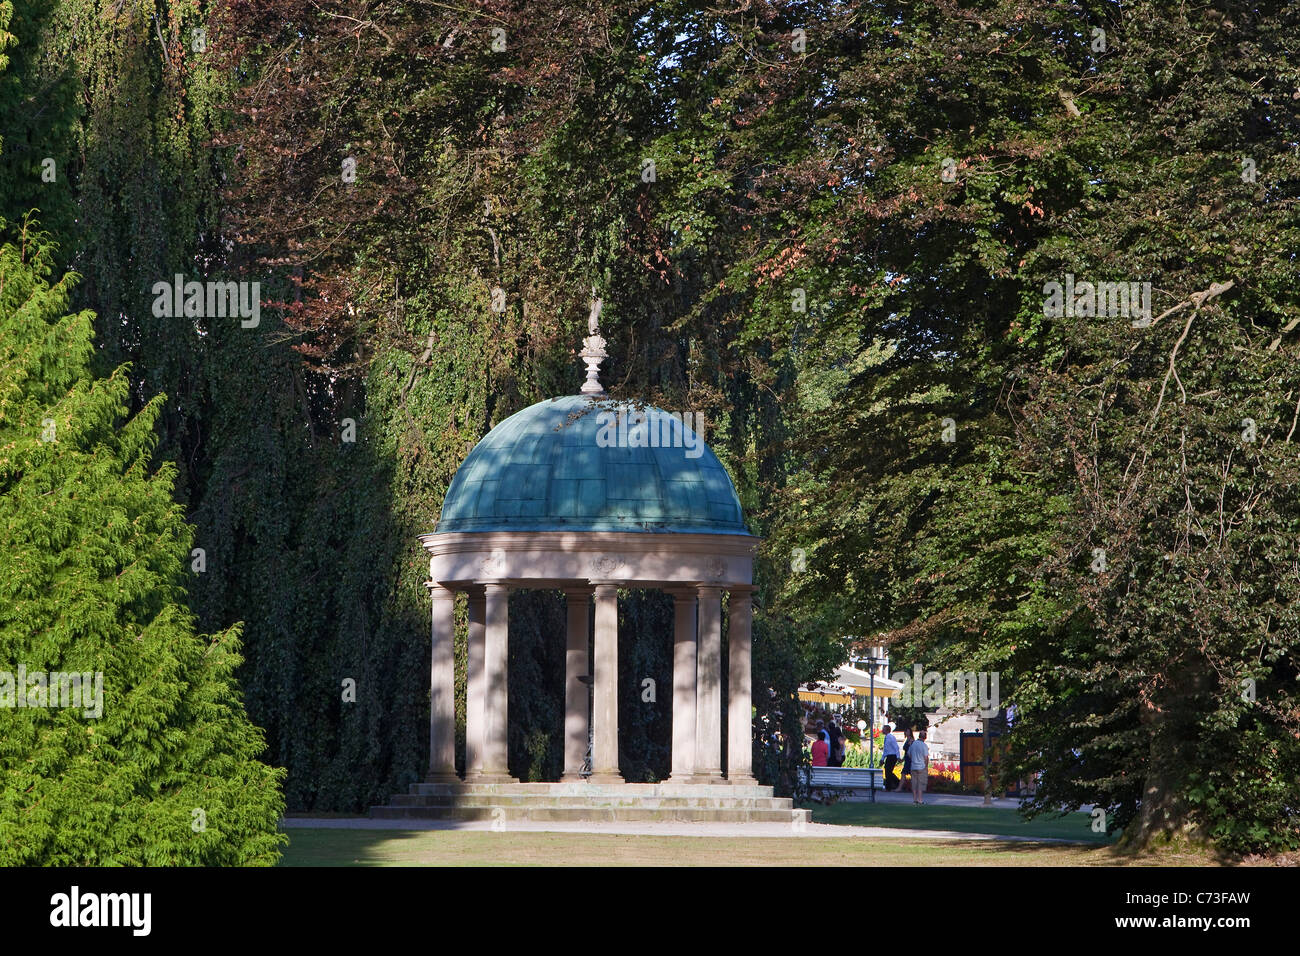 Beech trees surrounding the pavilion temple in Bad Pyrmont Spa Gardens Bad Pyrmont Weserbergland Lower Saxony Northern - Stock Image